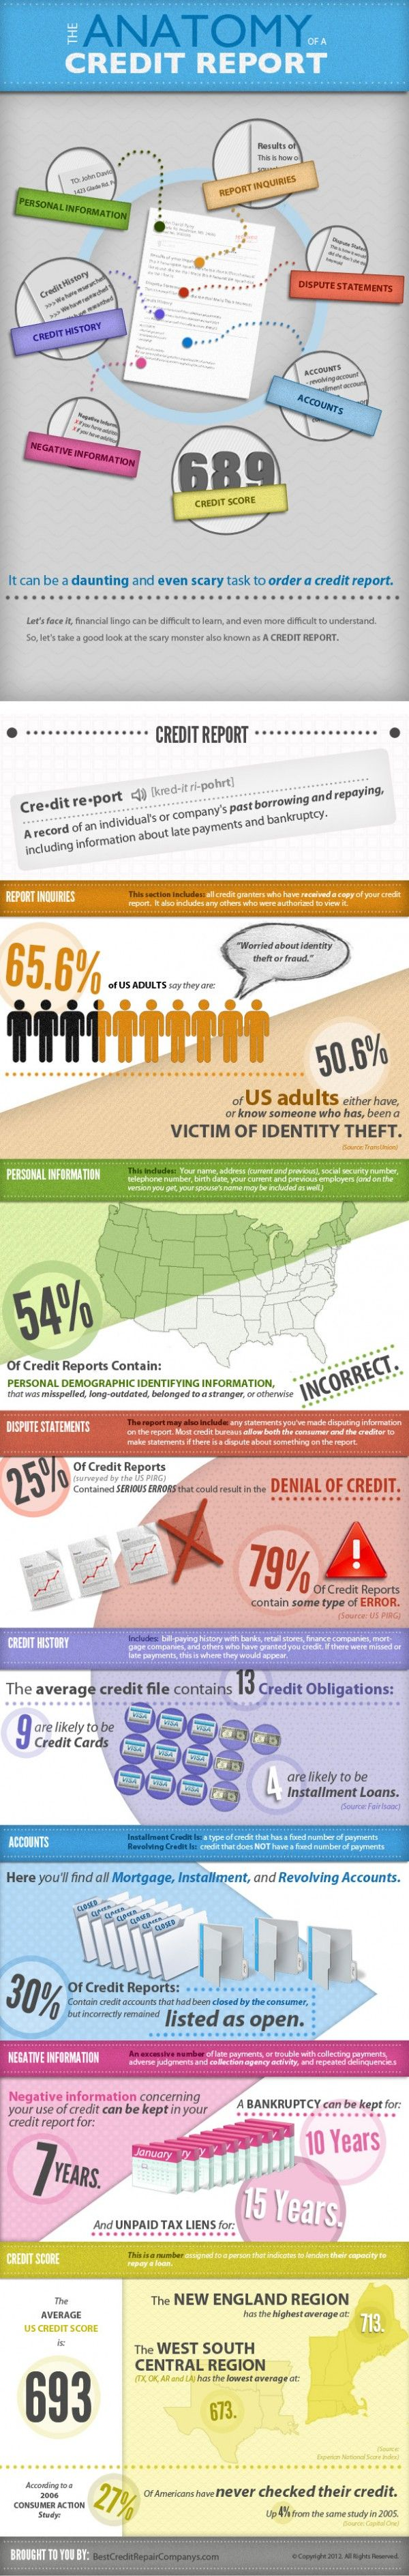 Anatomy of a Credit Report